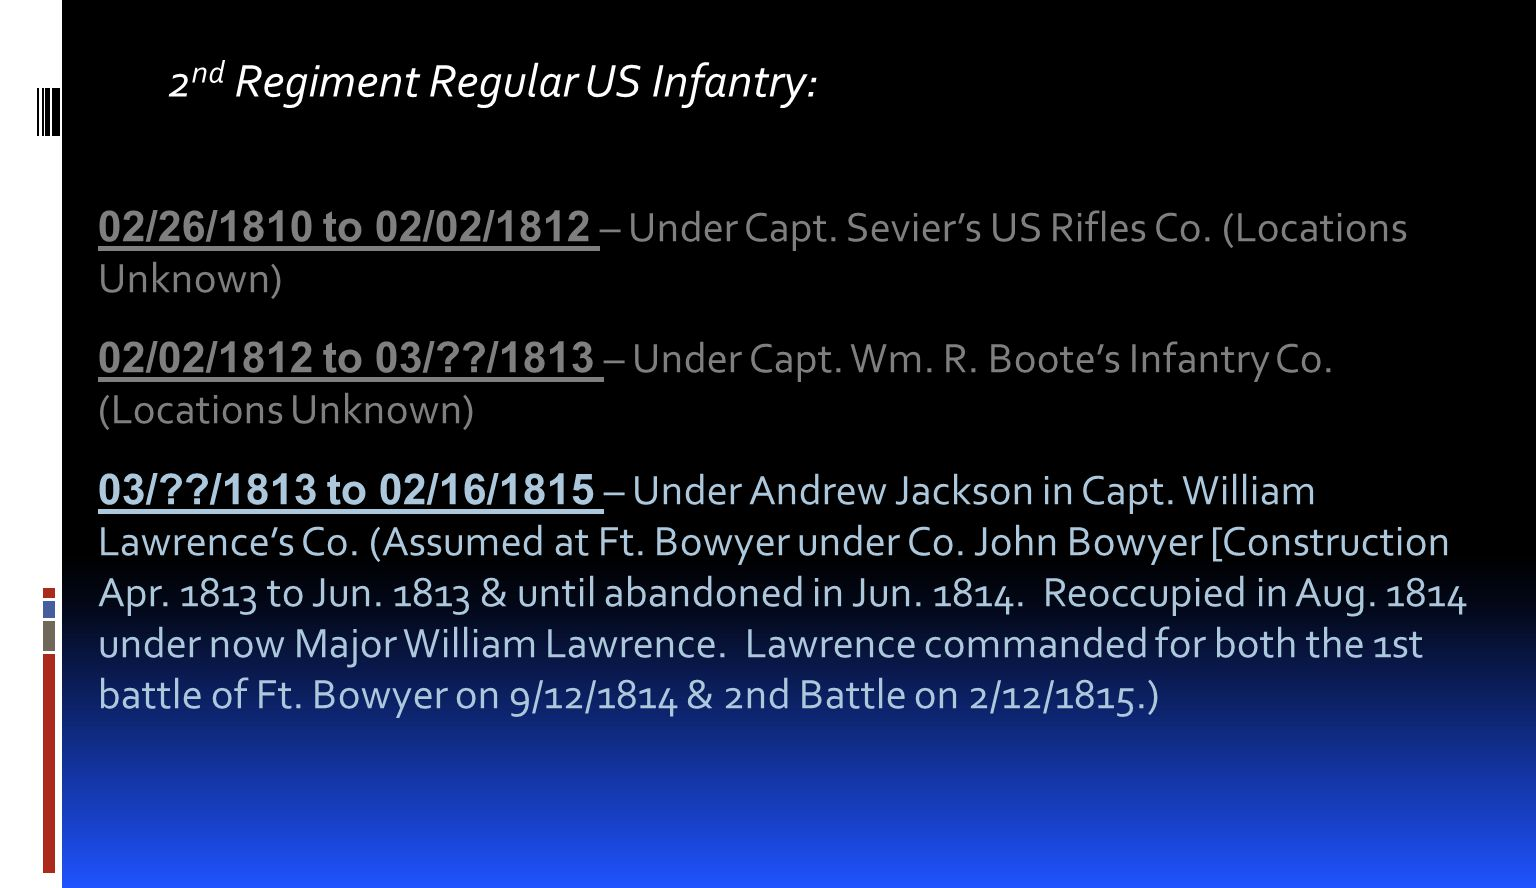 2 nd Regiment Regular US Infantry: 02/26/1810 to 02/02/1812 – Under Capt. Seviers US Rifles Co. (Locations Unknown) 02/02/1812 to 03/??/1813 – Under C